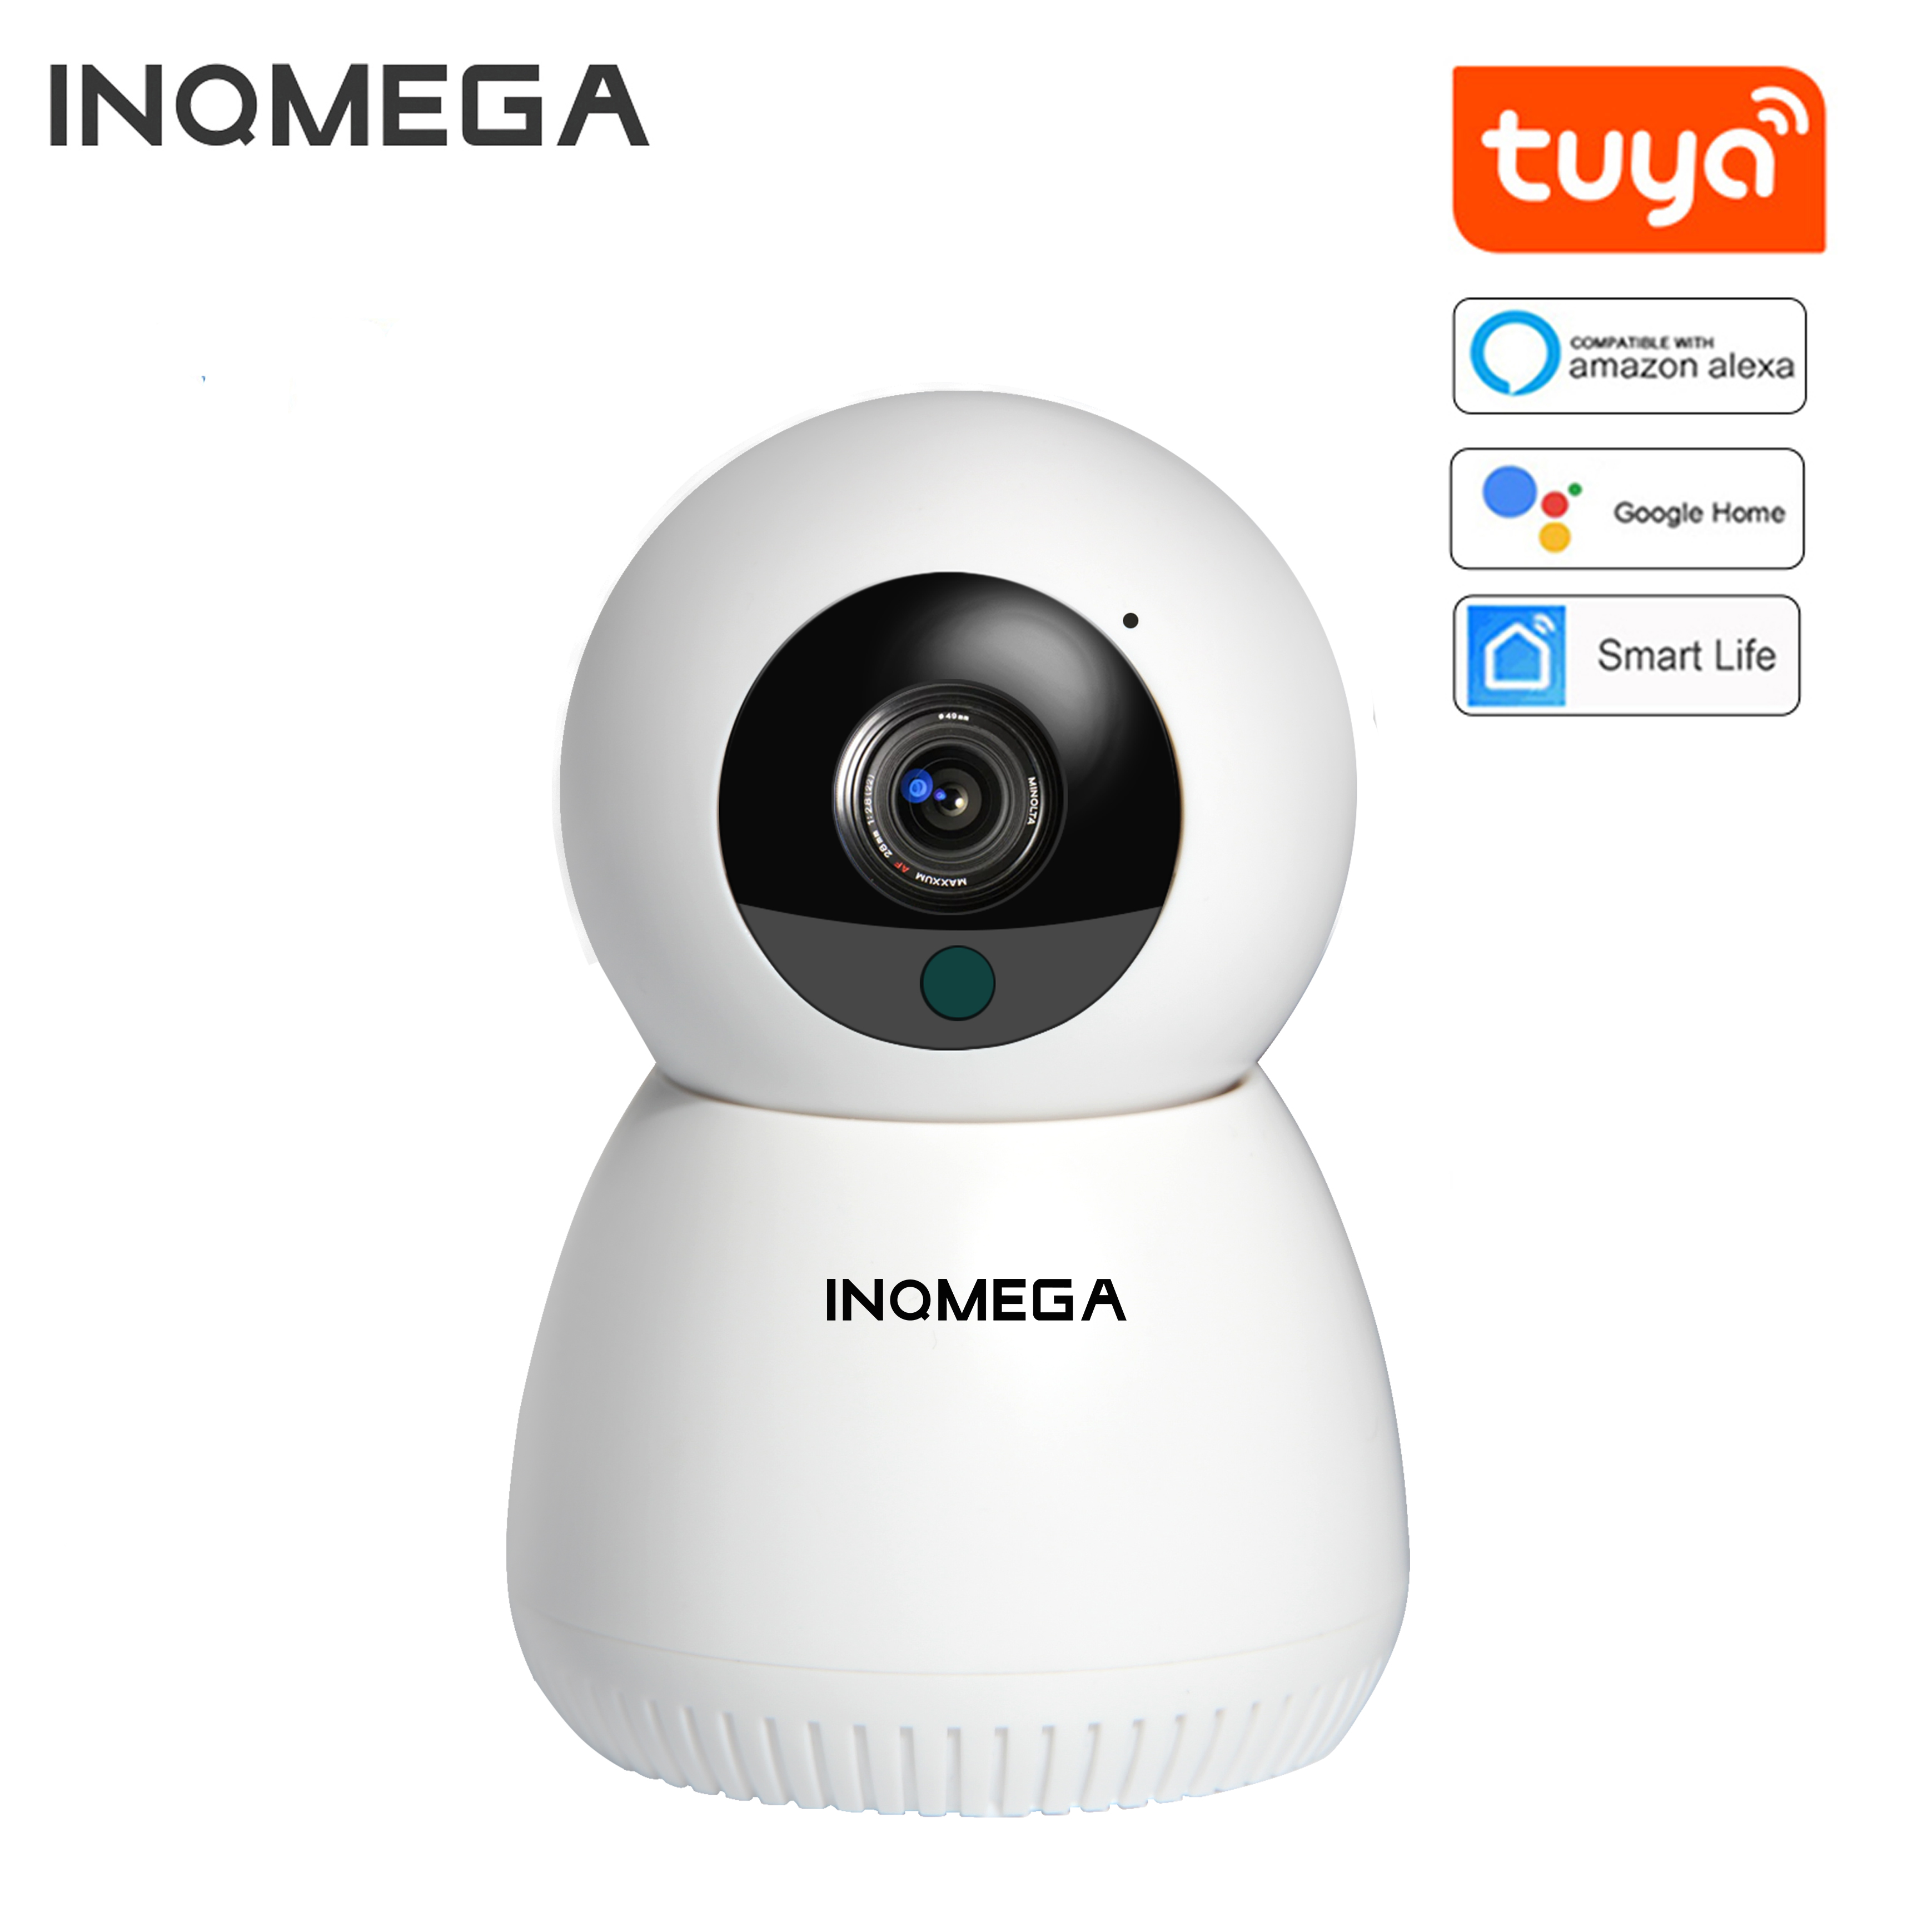 INQMEGA 1080P 720P IP Camera WiFi Wireless Mini Smart Home Security CCTV  Camera Two-way Audio Night Vision Baby Monitor APP TUYA